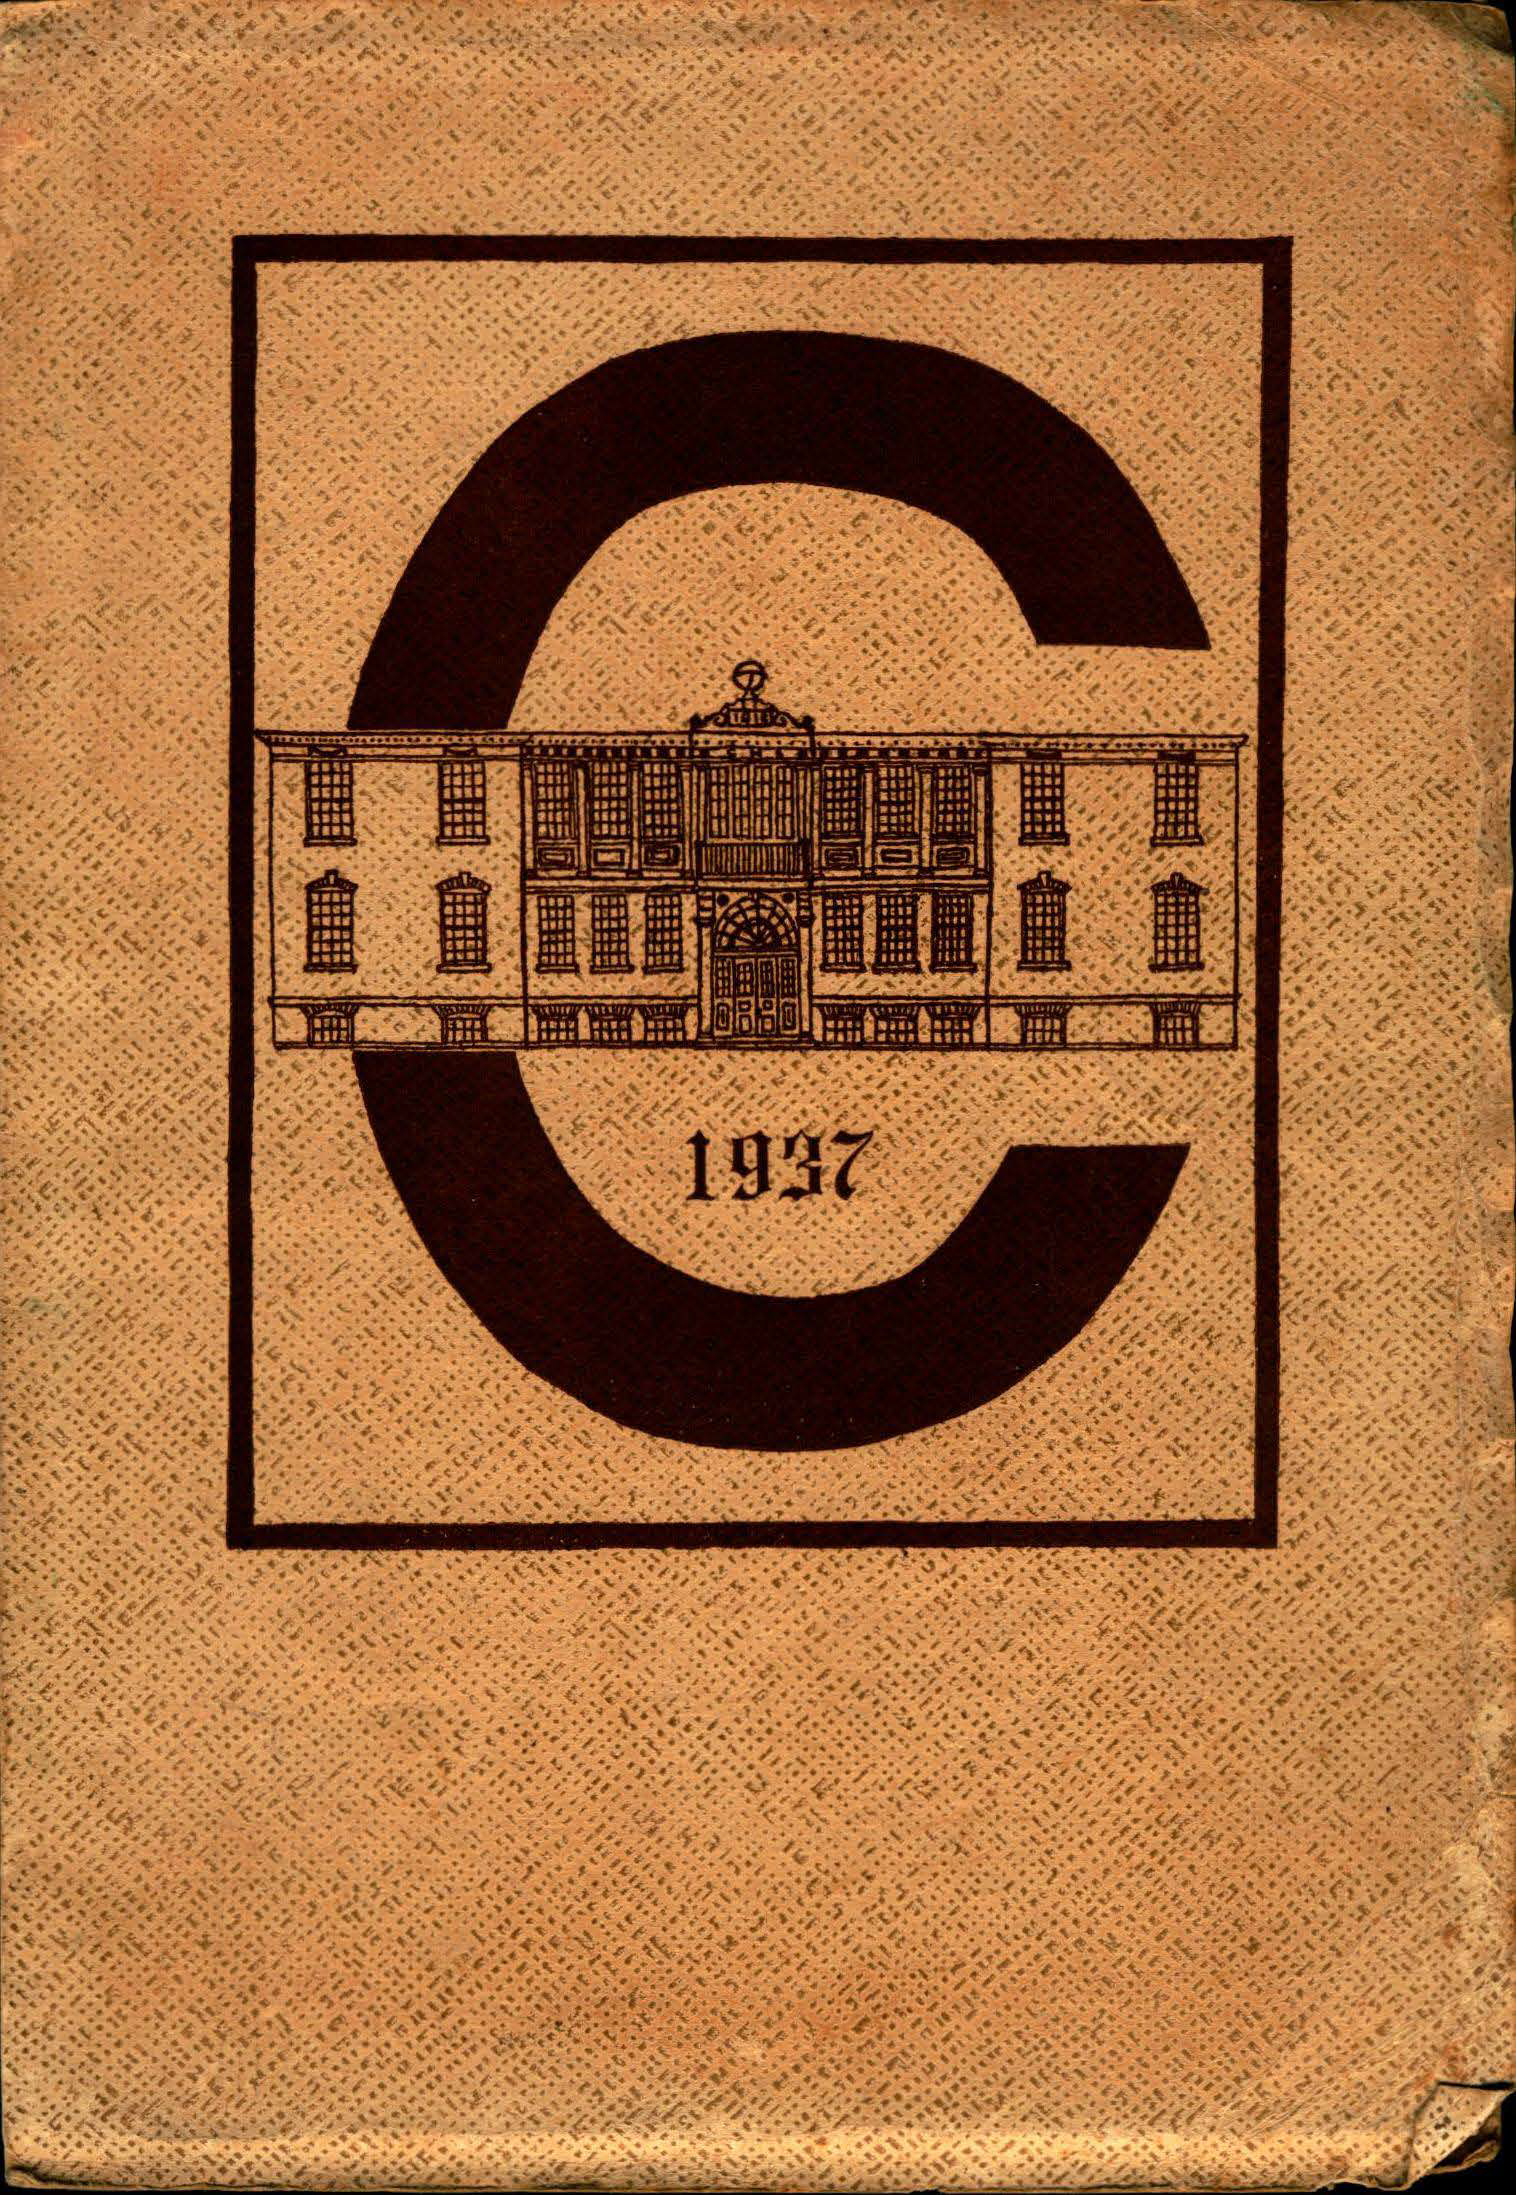 1937 Chelmsford High Yearbook 1